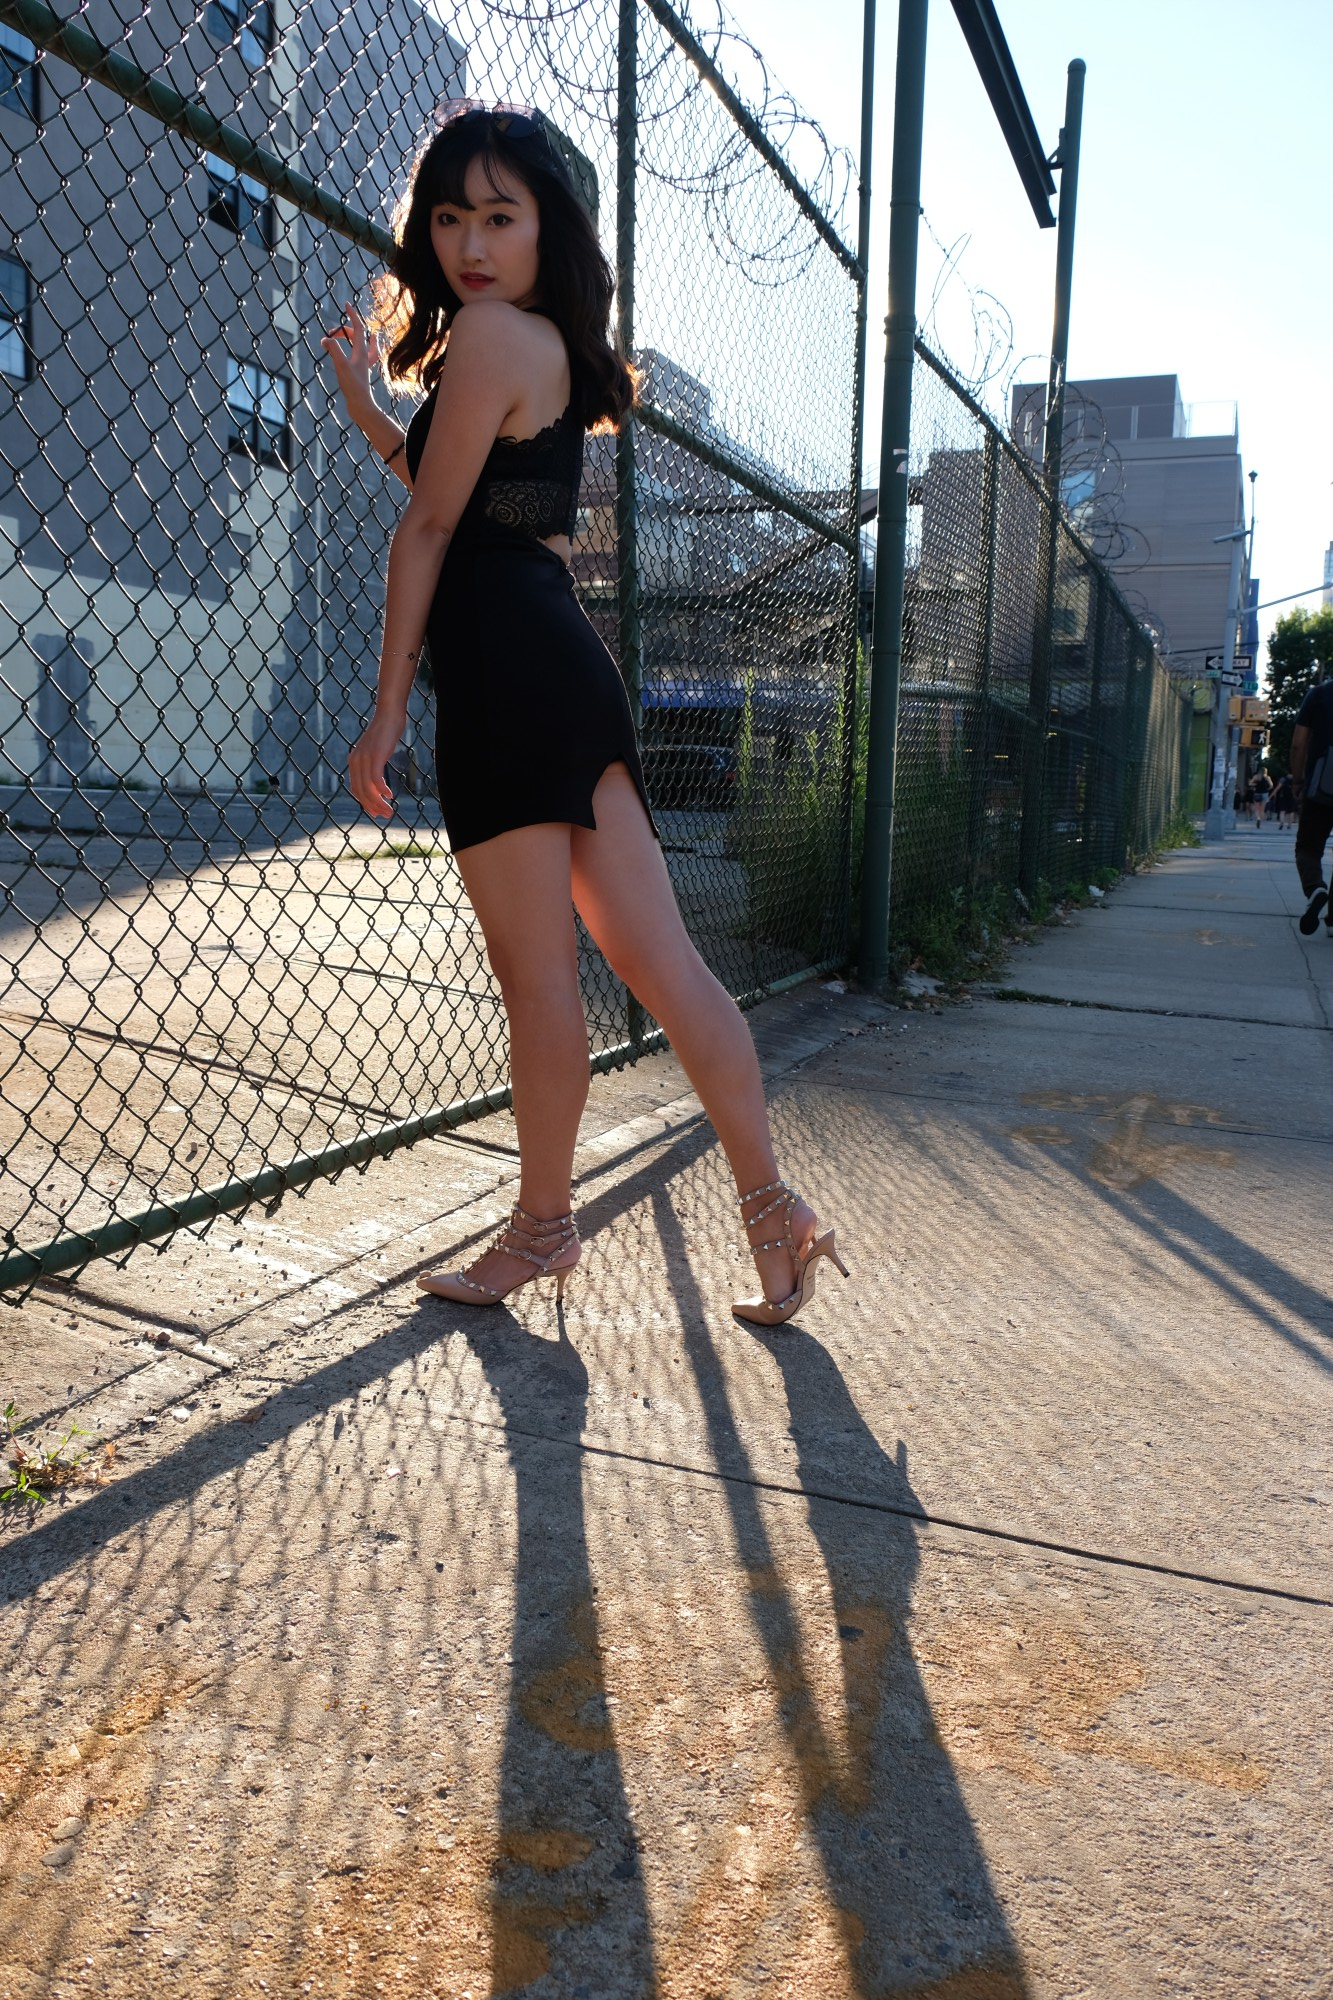 Chinese model by chain link fence